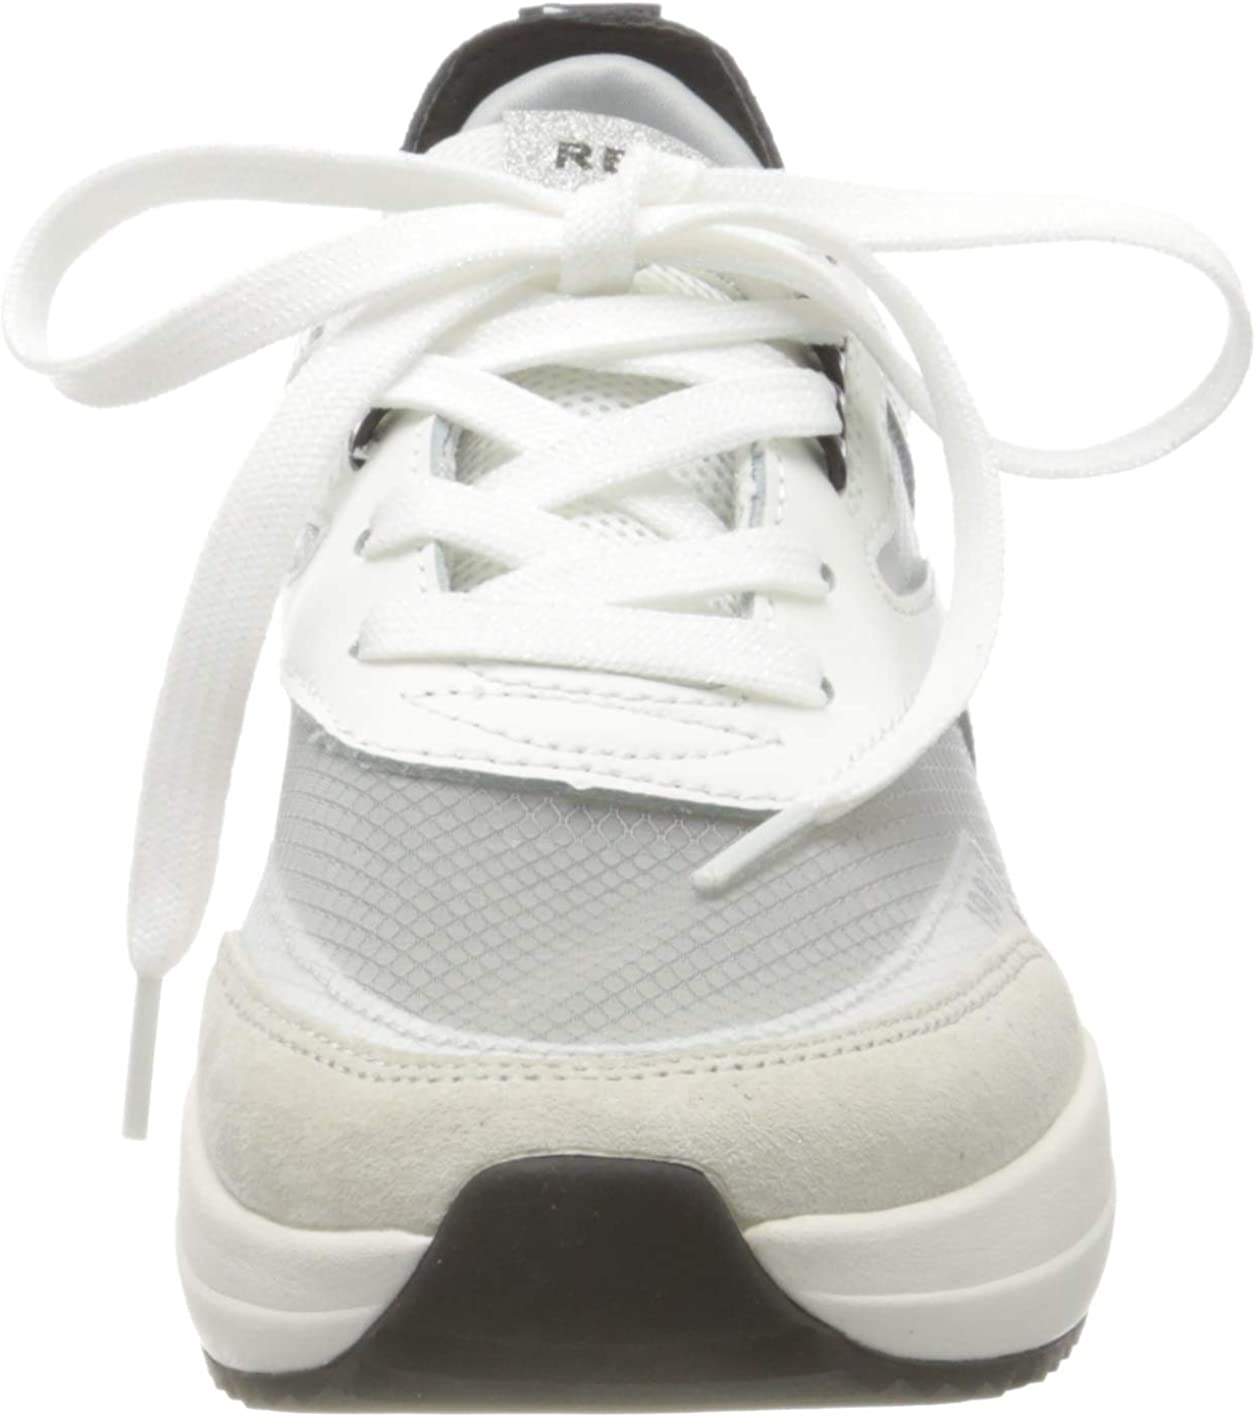 Replay Women's Low-Top Sneakers White White 61